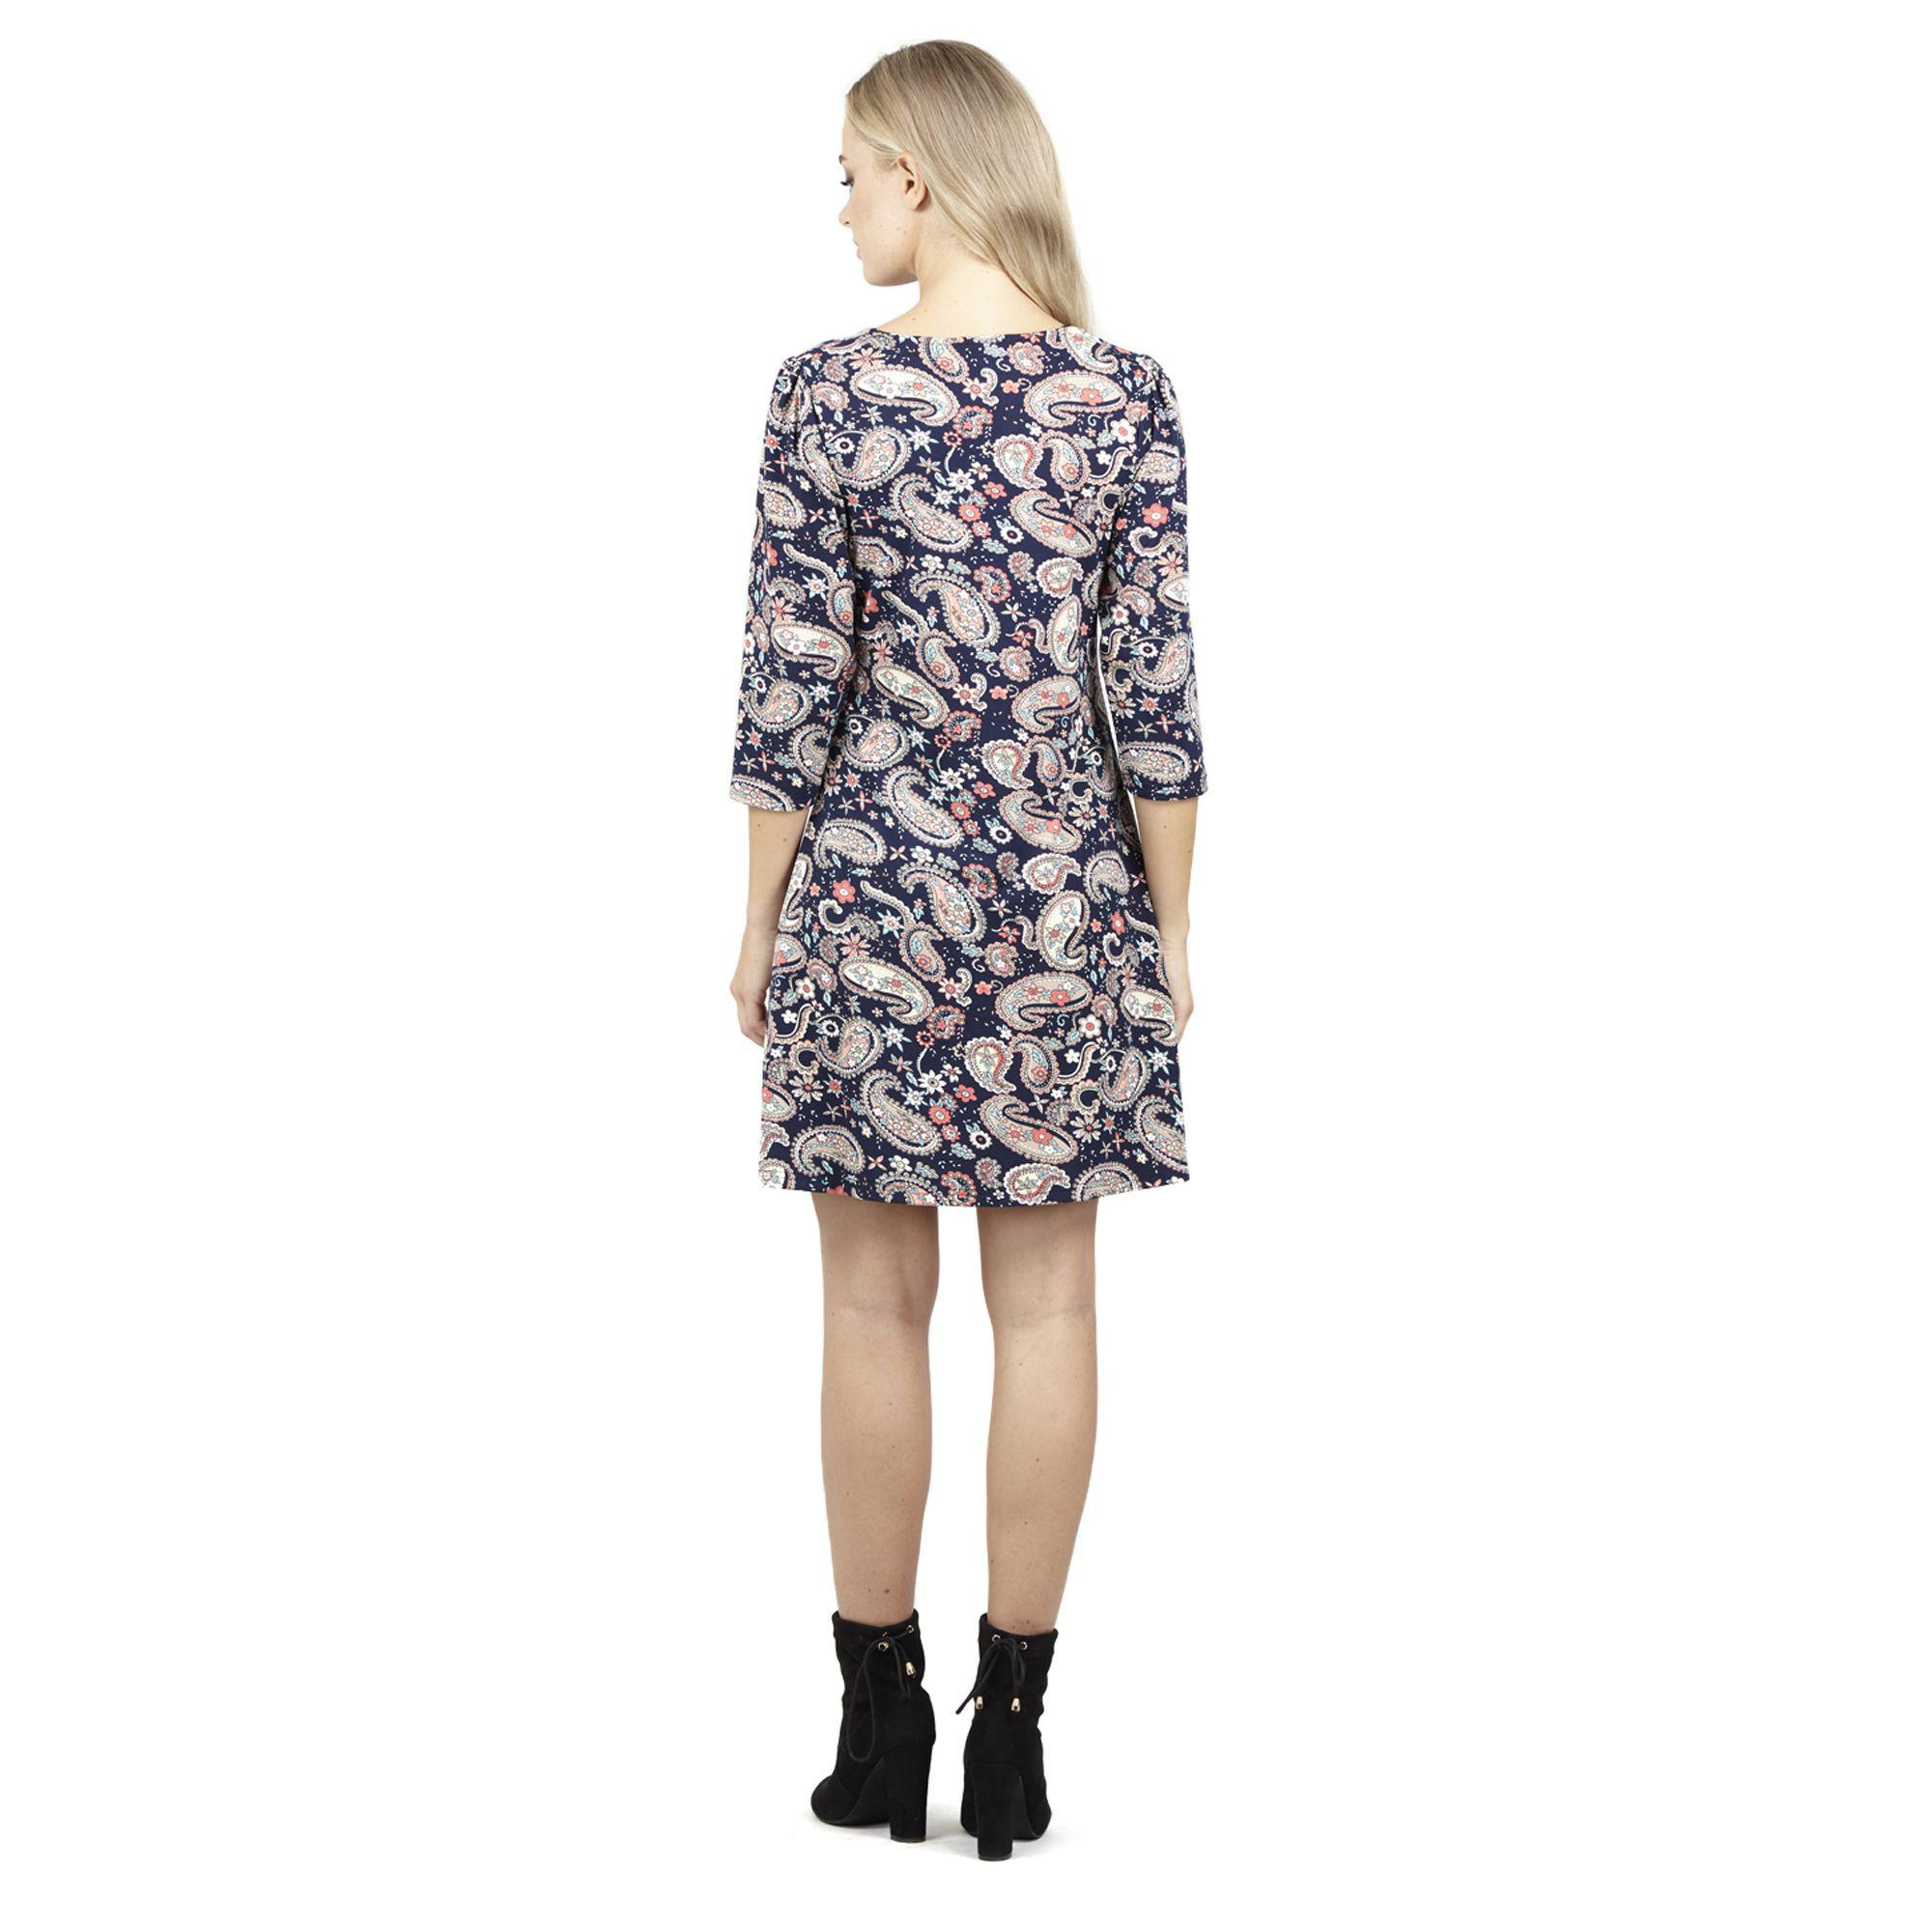 45860c13994 Izabel London Navy 3/4 Sleeve Printed Tunic Dress in Blue - Lyst